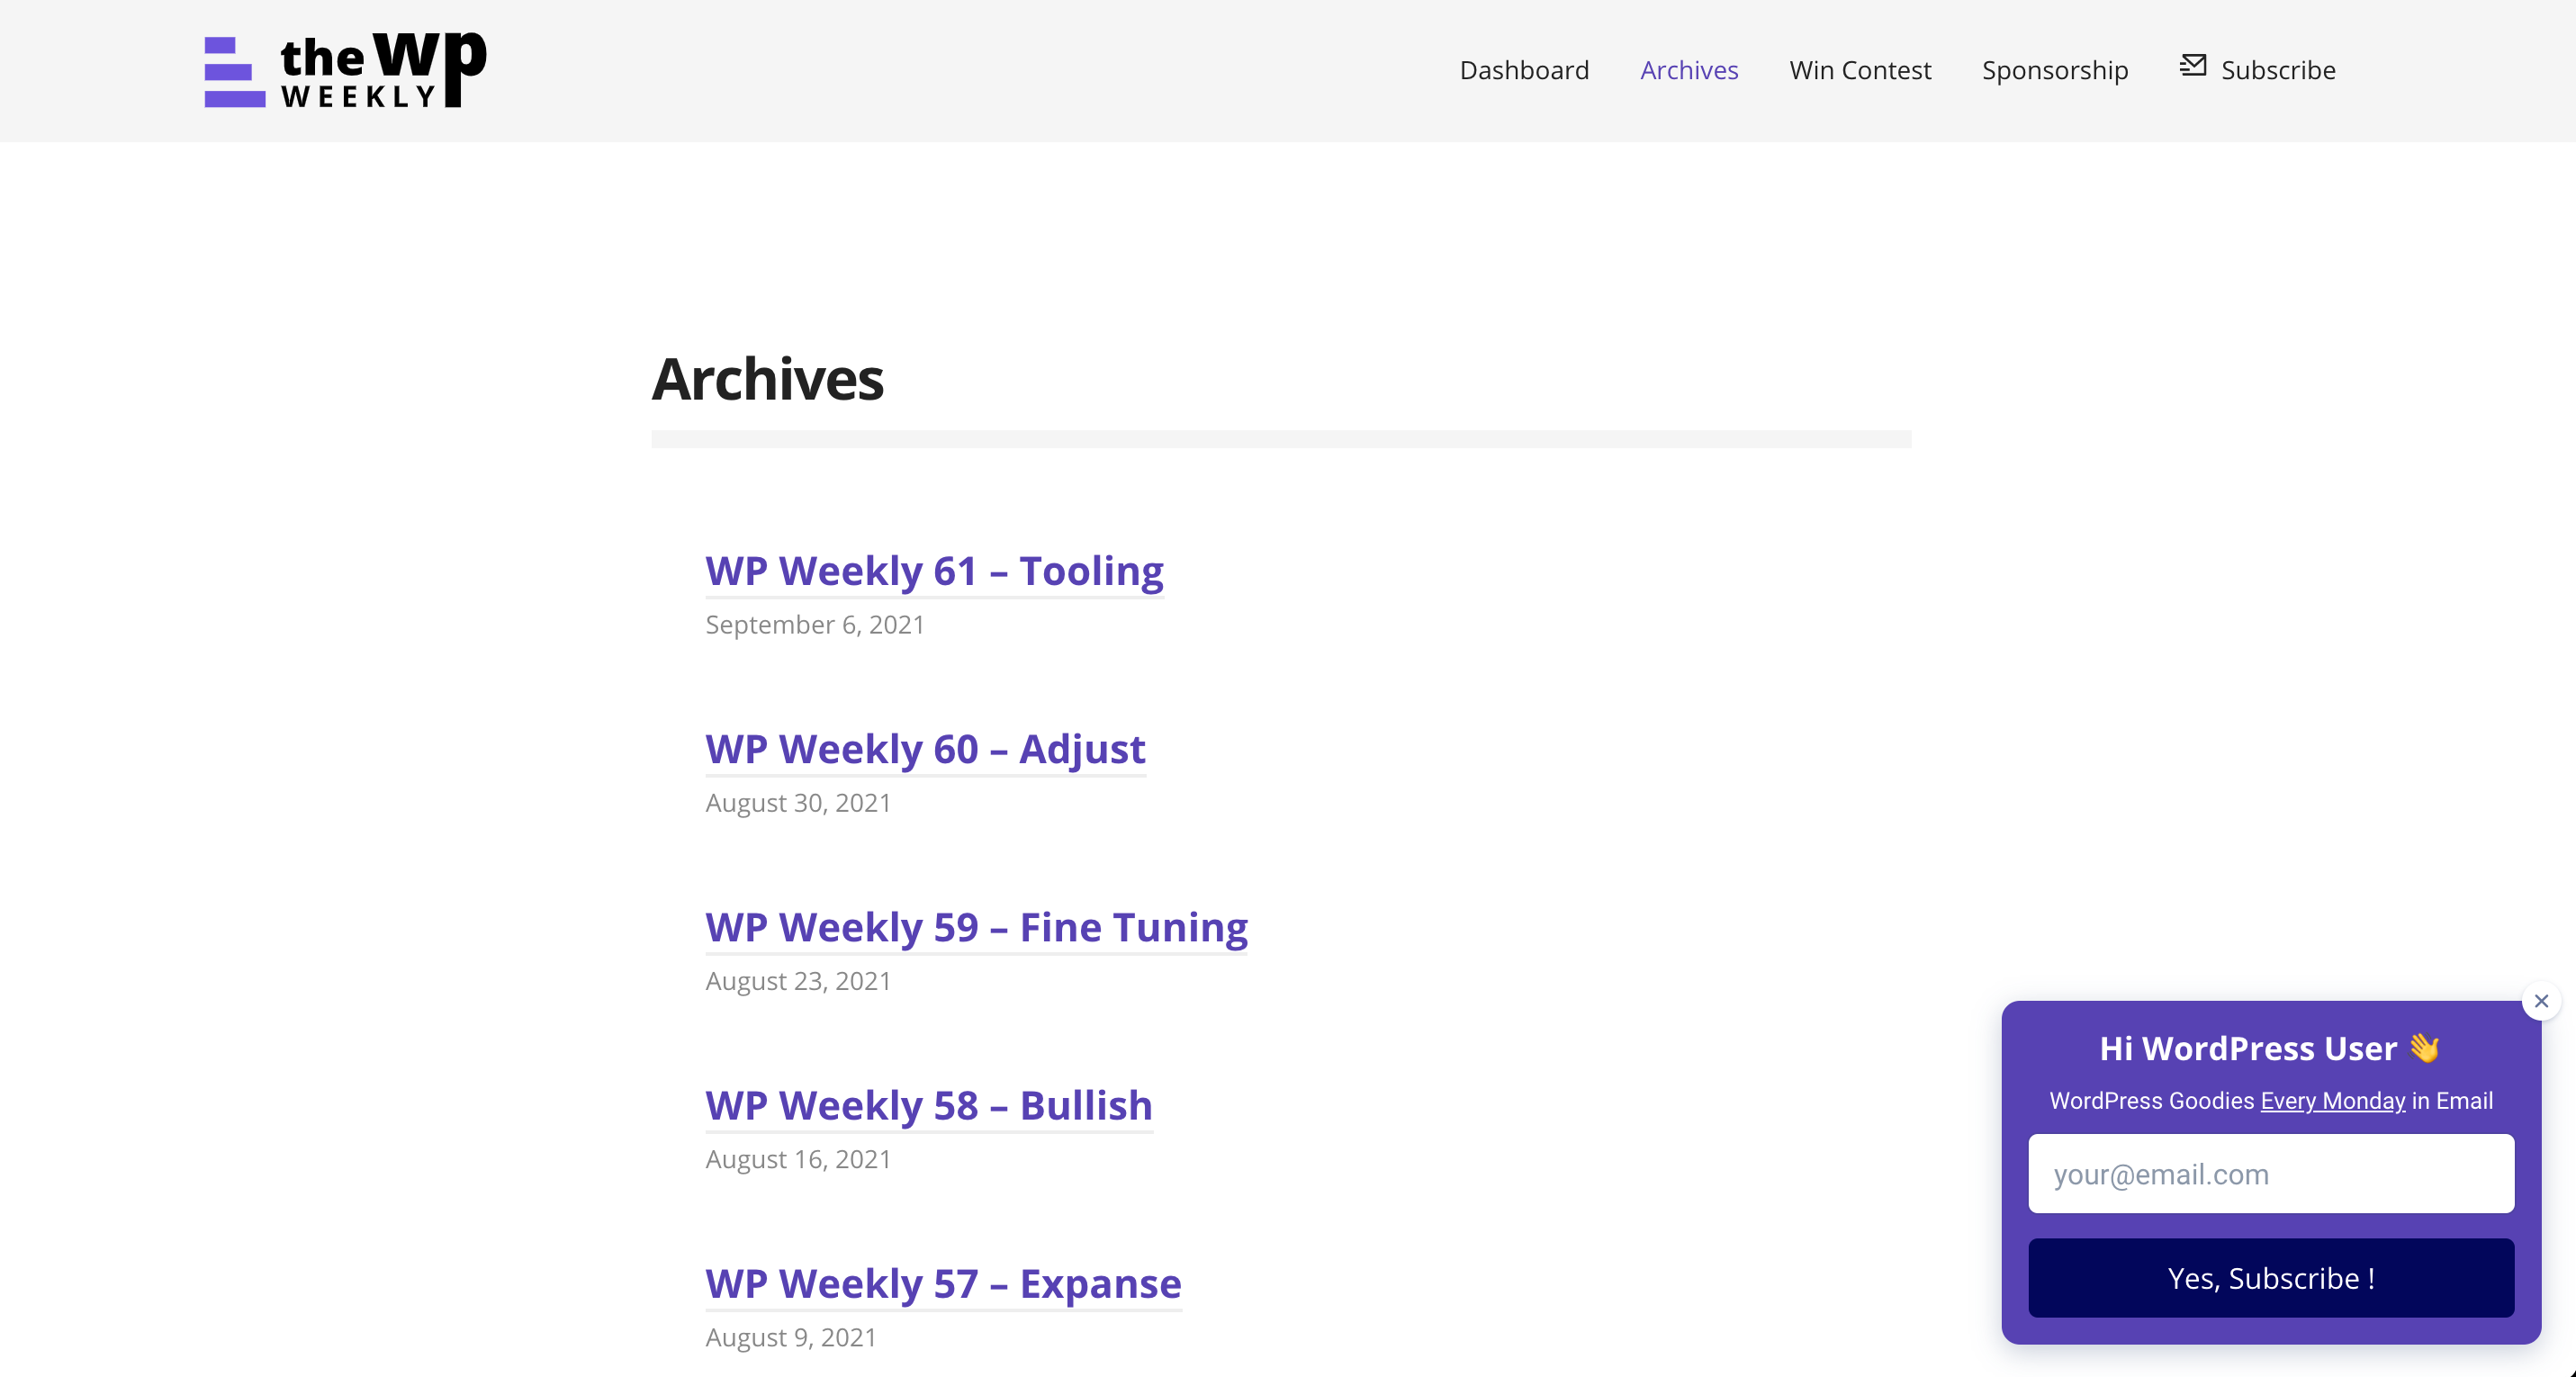 The WP Weekly's archives